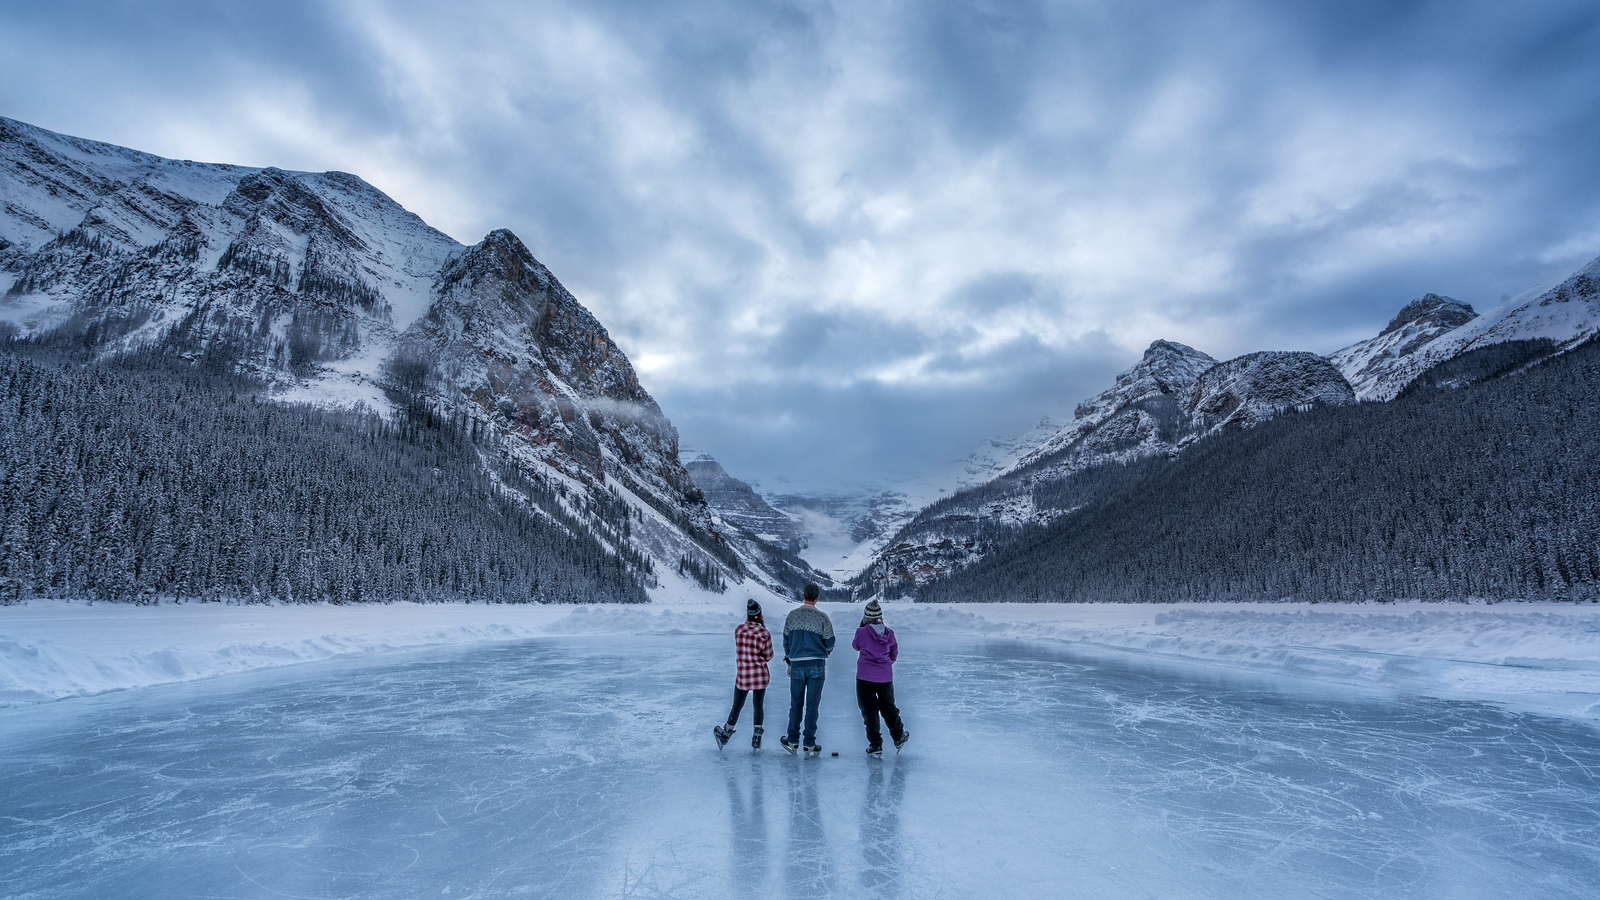 Pond hokey on Lake Louise in Banff National Park, Alberta